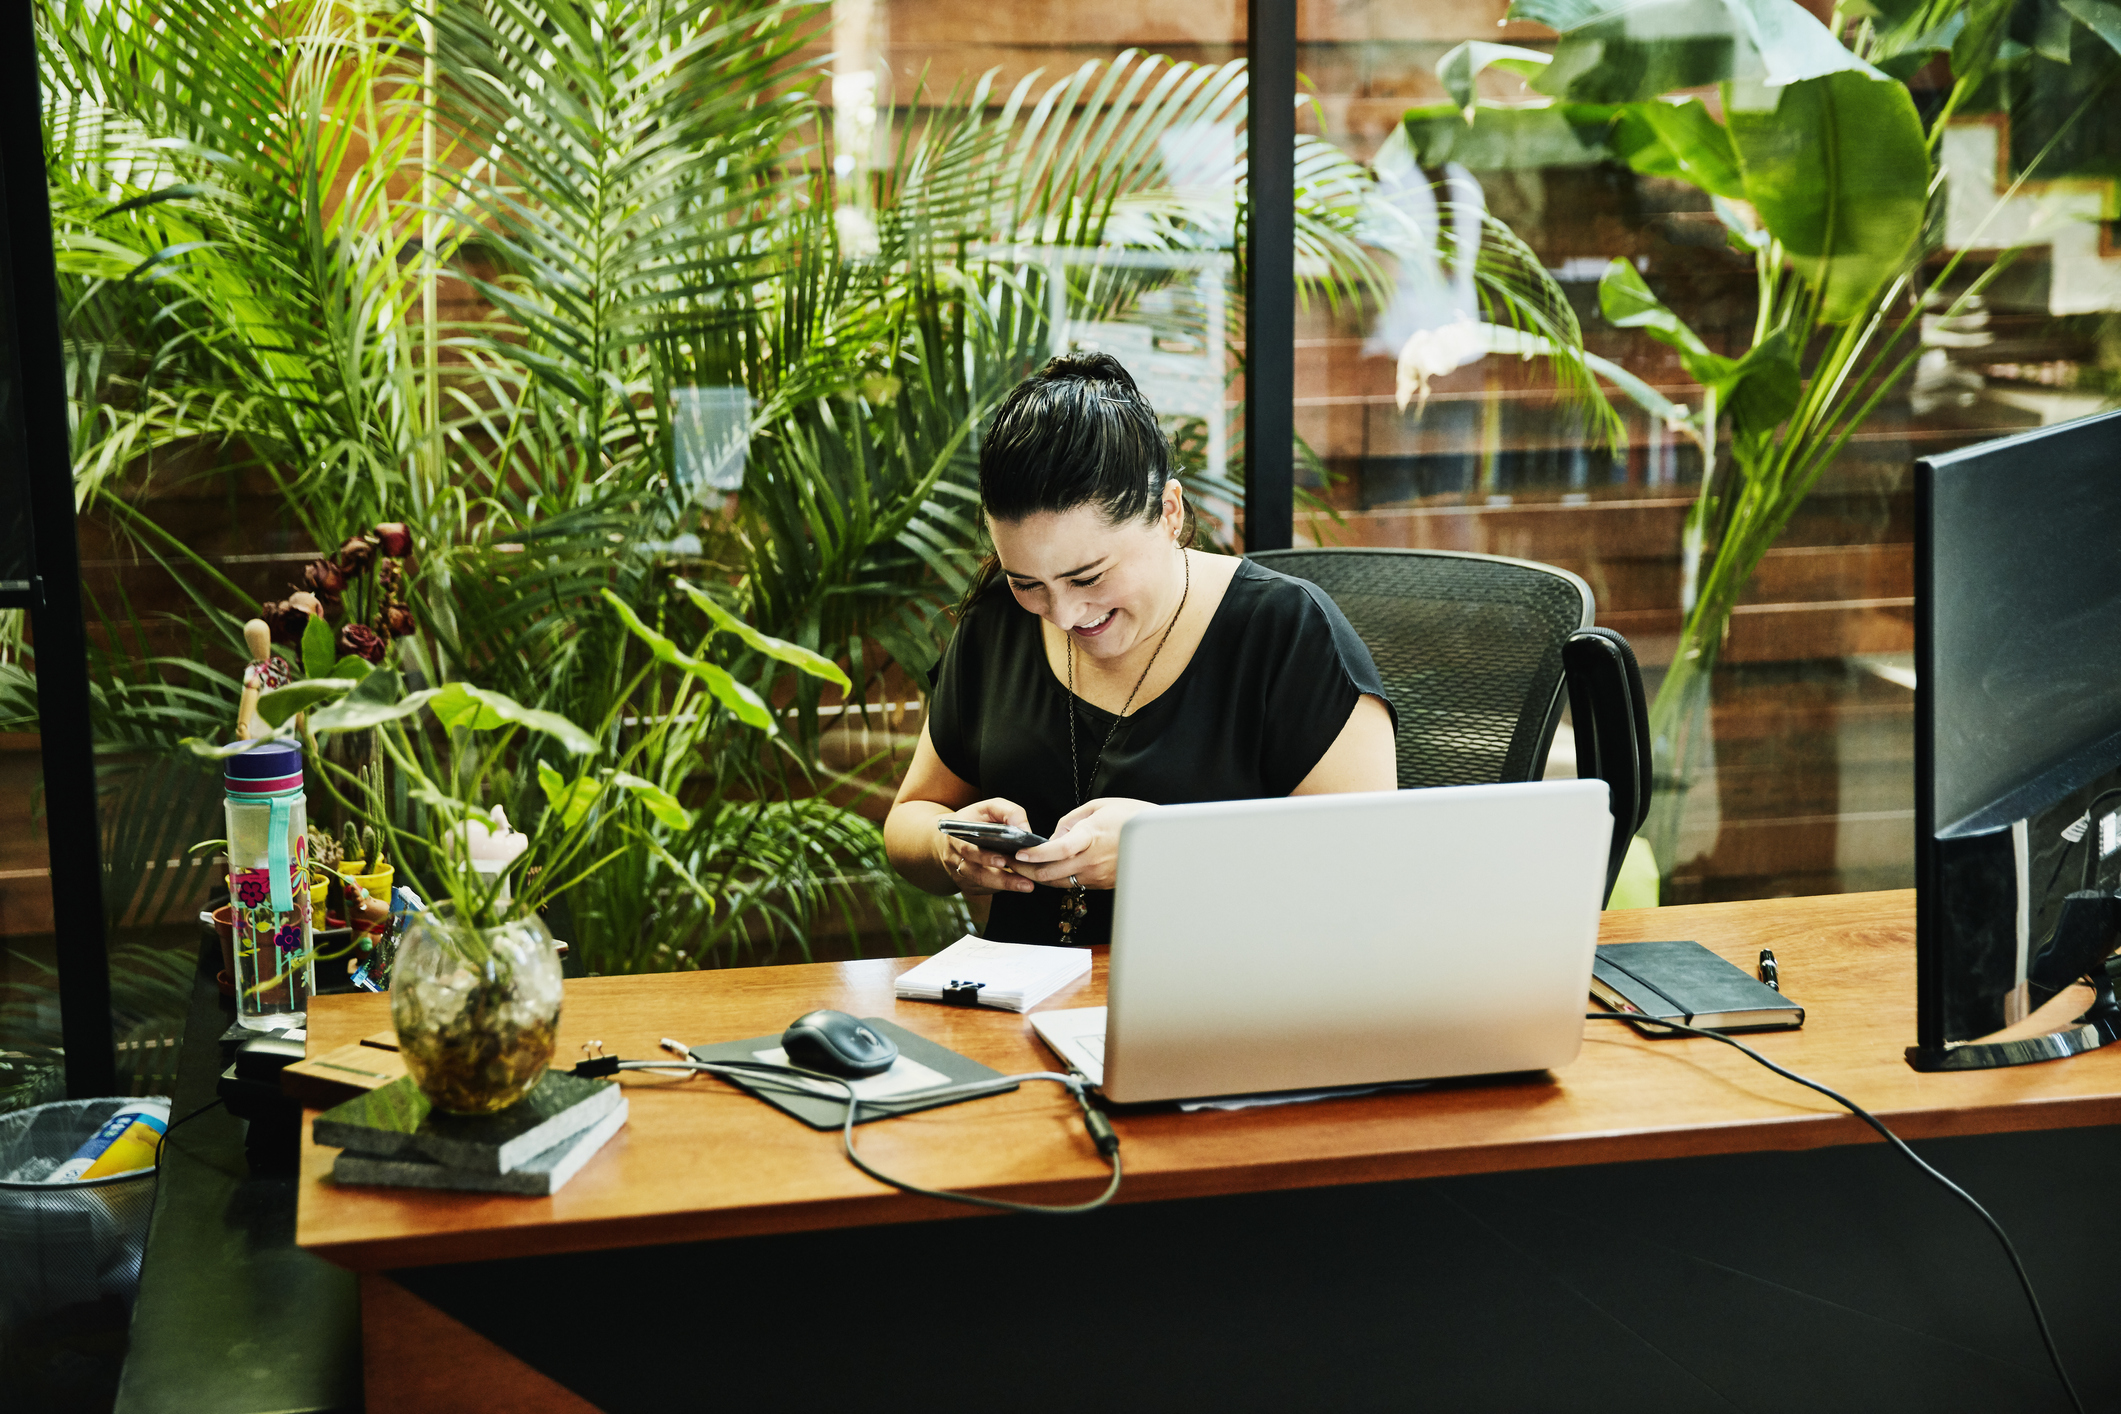 The best office plants that will survive life on your desk